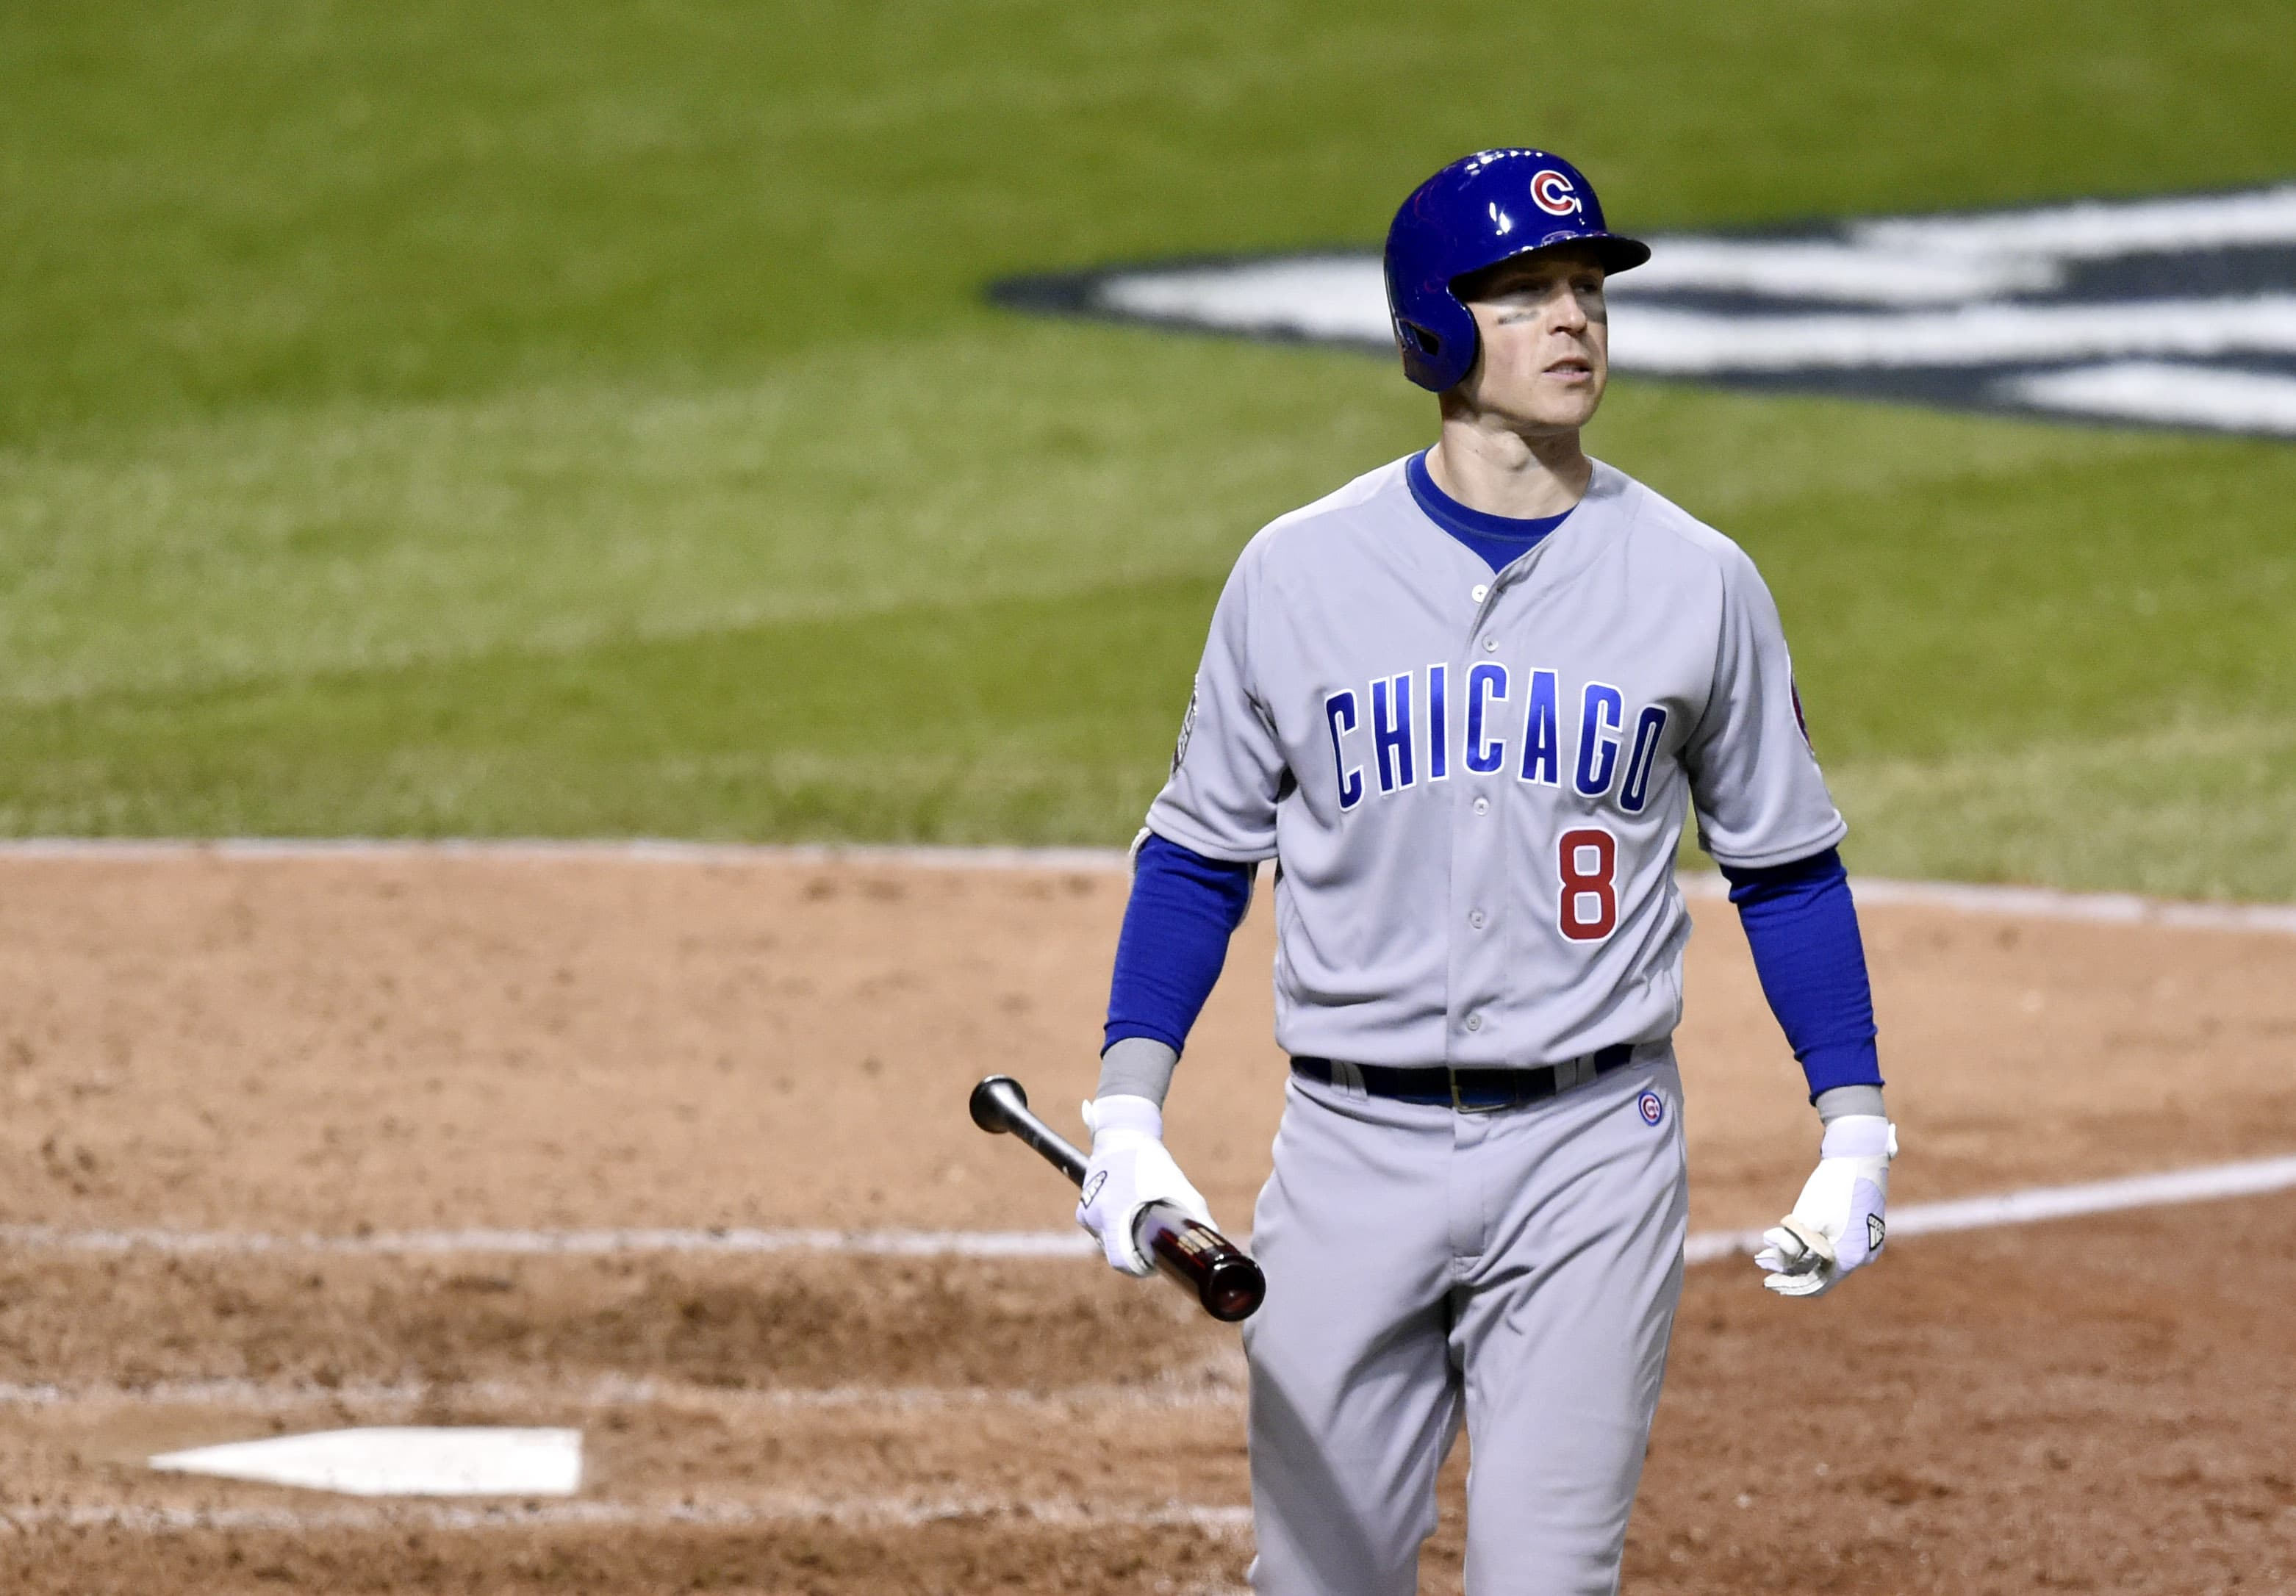 In his first start this postseason, Chris Coghlan didn't deliver, striking out twice before coming out of the game for a pinch-hitter. (David Richard/USA TODAY Sports)